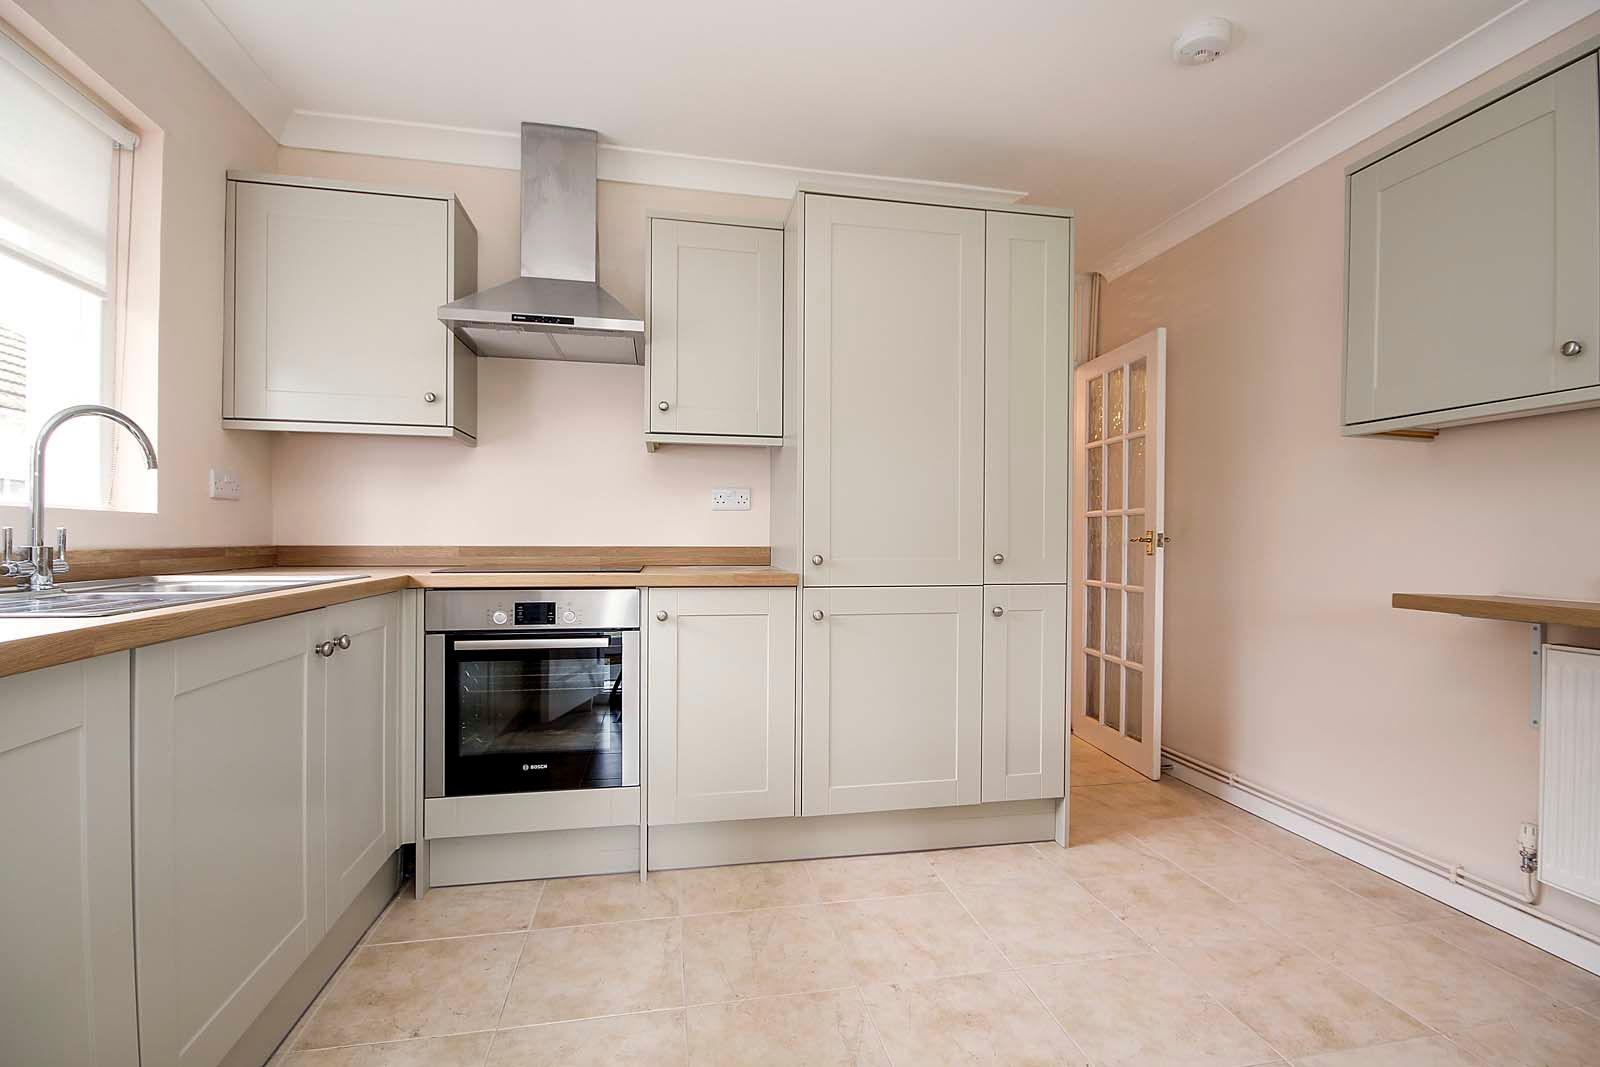 3 bed bungalow for sale in Hillview Crescent COMP MAY 2019  - Property Image 2